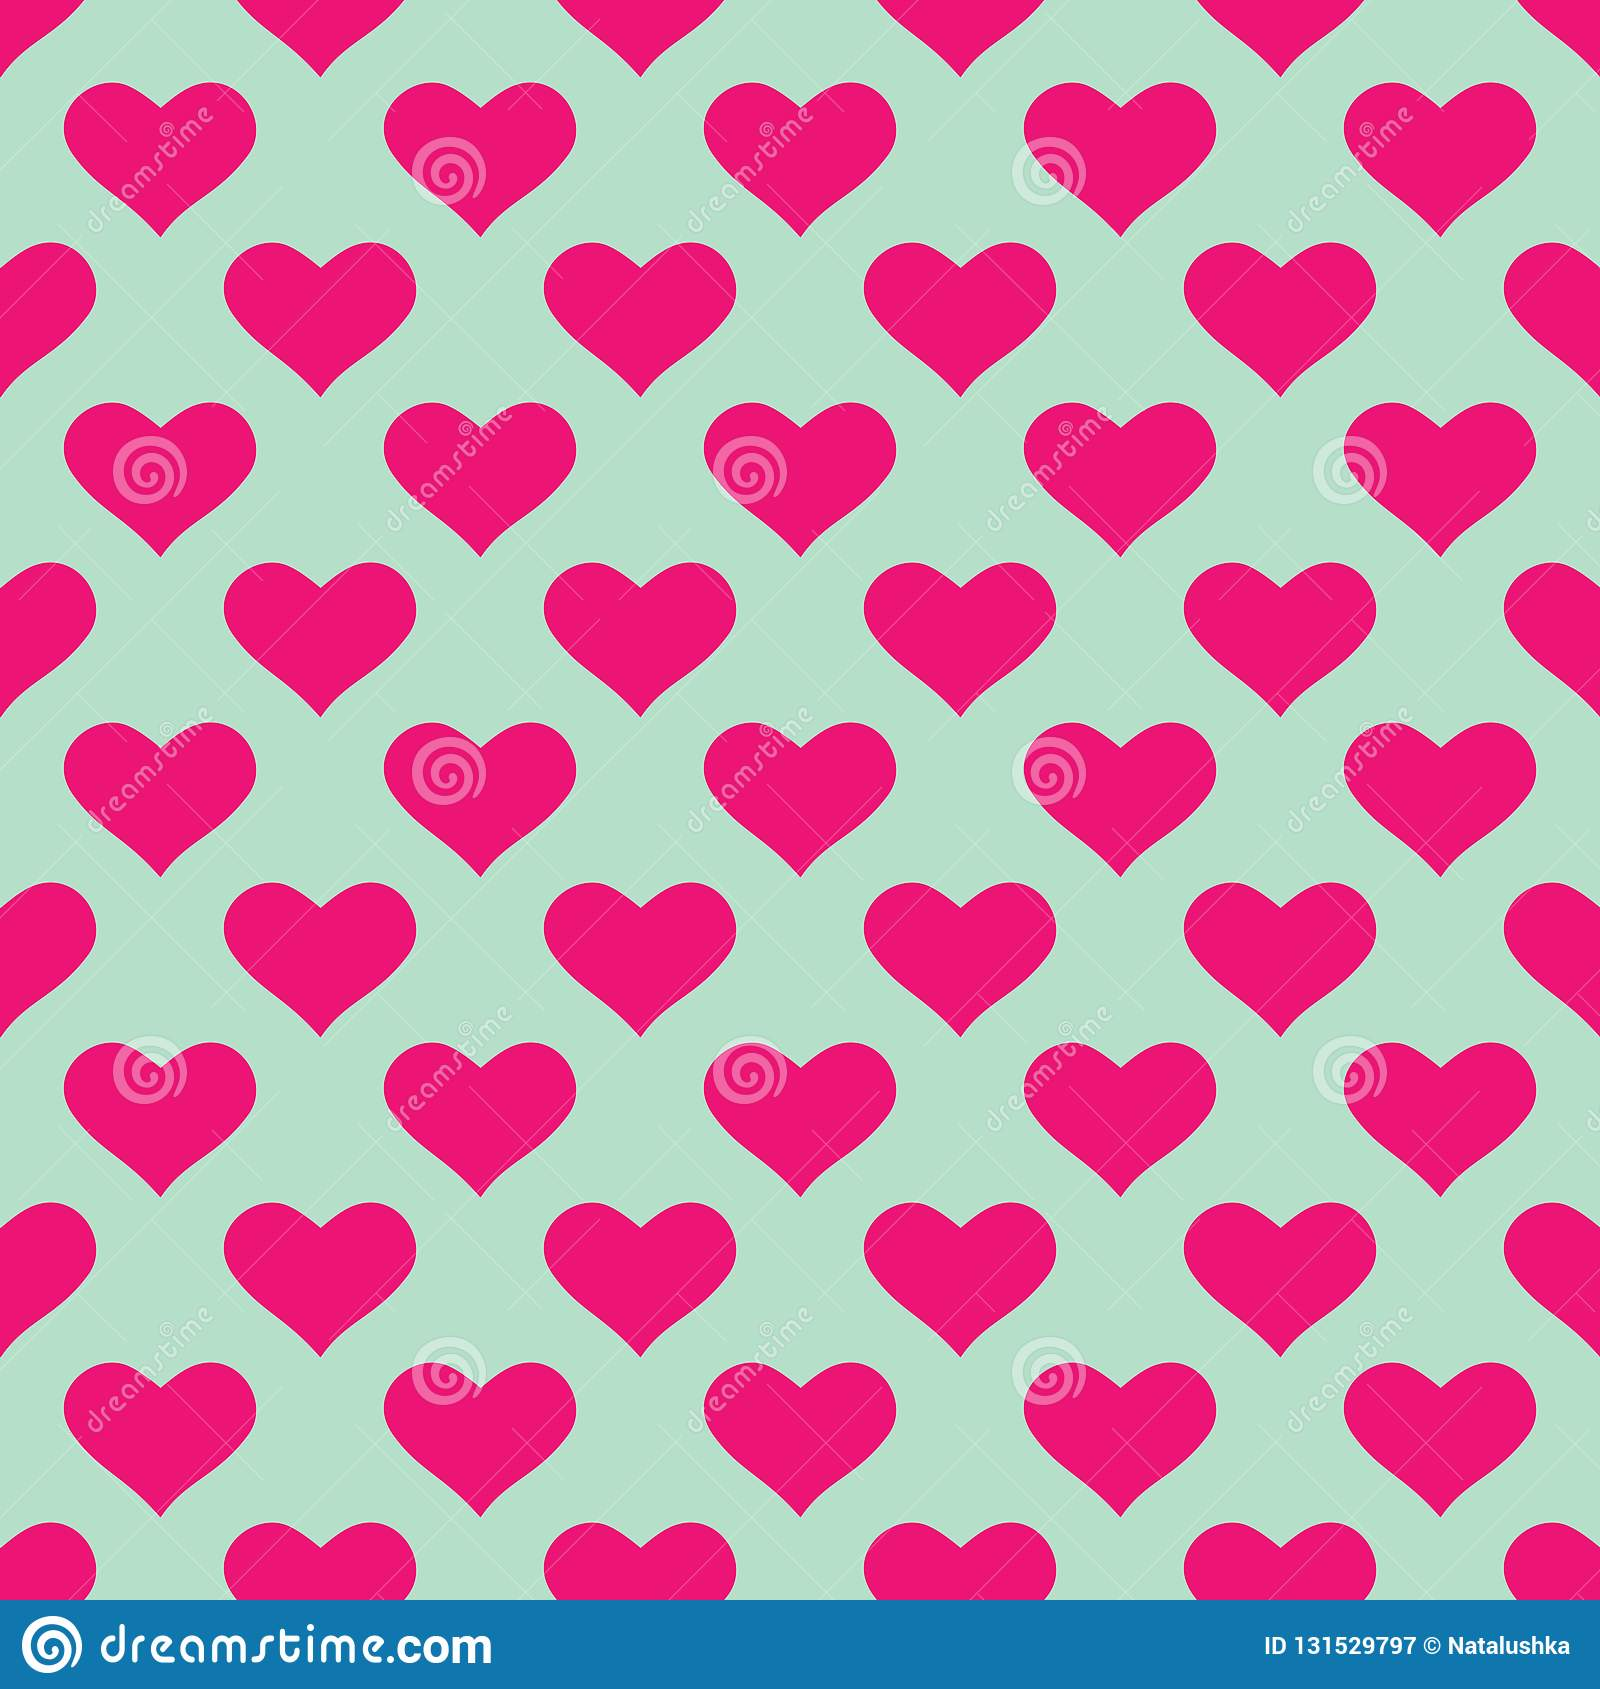 Wallpaper With Pink Hearts Stock Vector Illustration Of